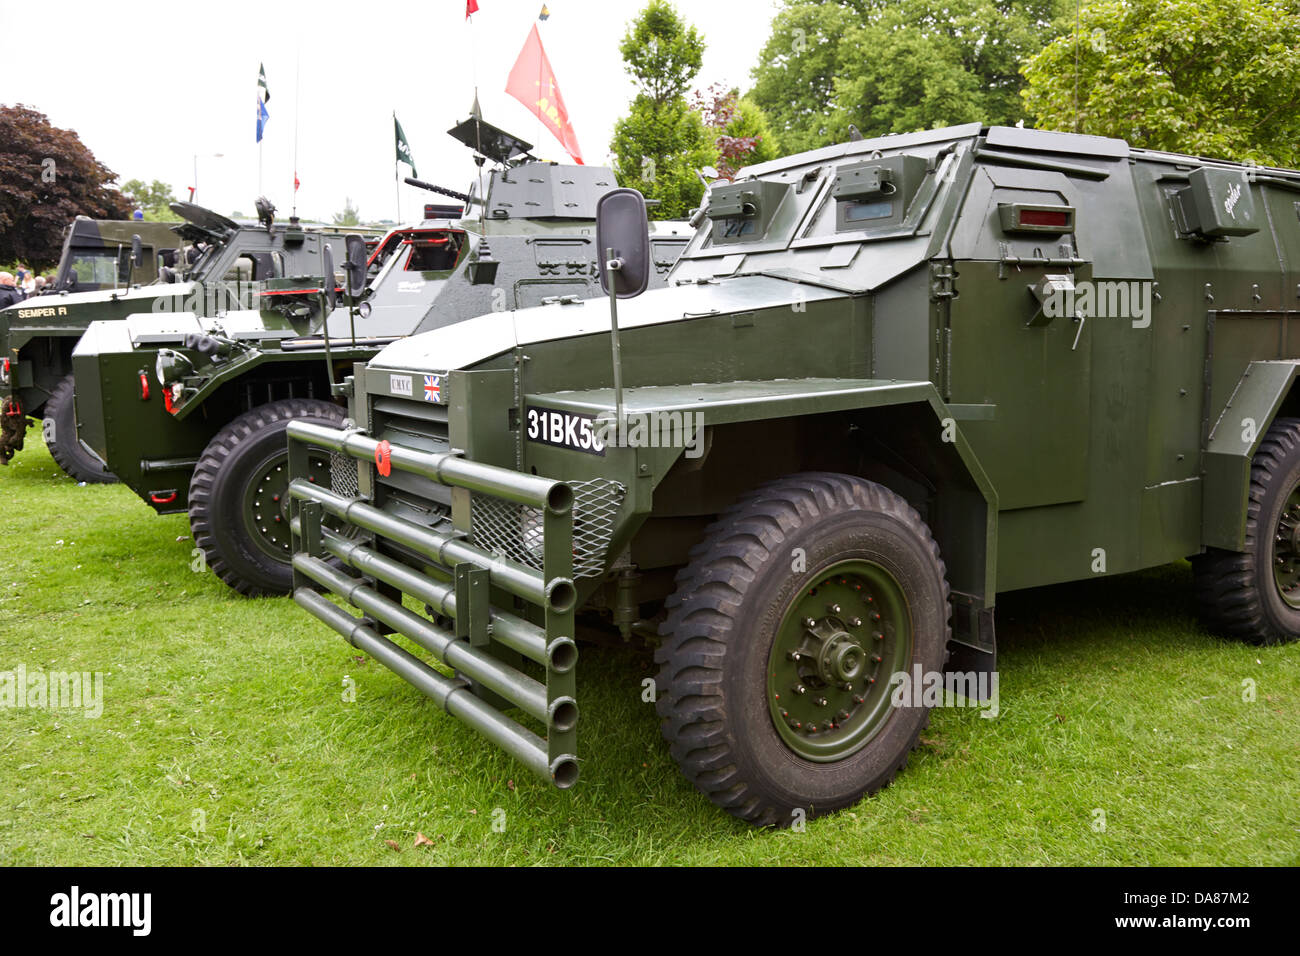 Armored Vehicles For Sale >> vintage british army military vehicles on display county ...